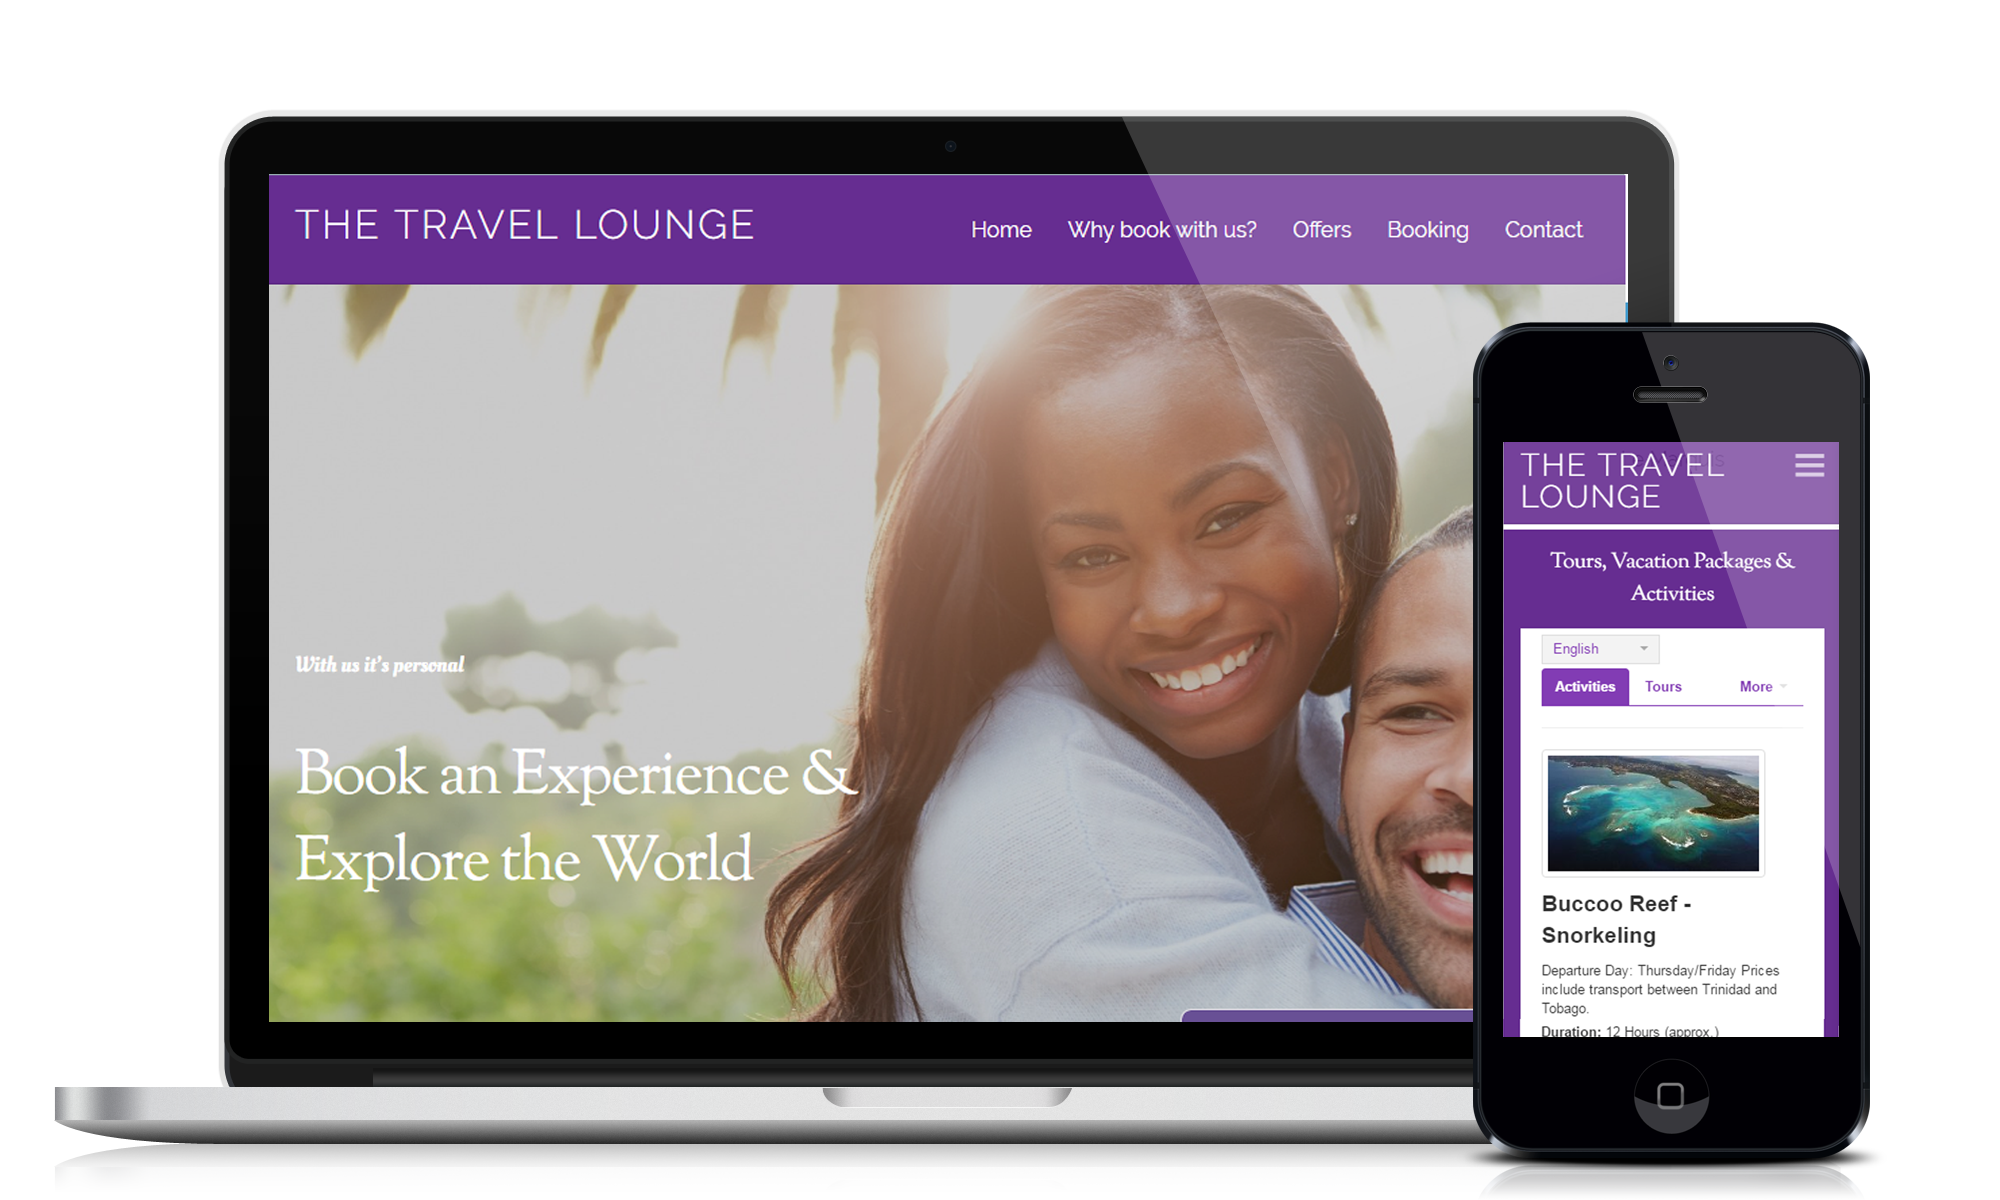 The Travel Lounge website